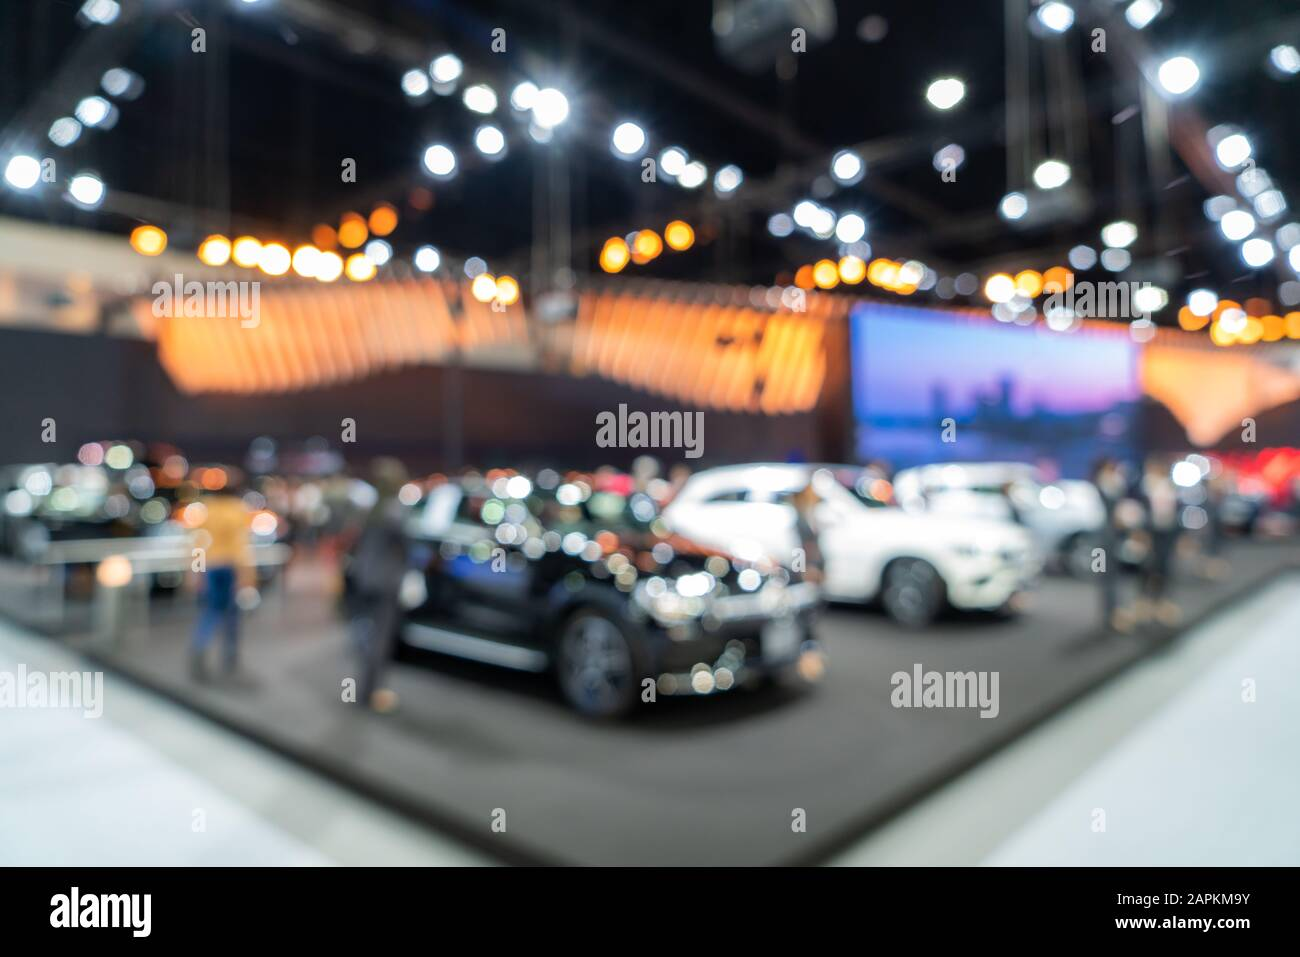 Blurred background of new cars displayed in luxury showroom with light bokeh, motor show event. Stock Photo